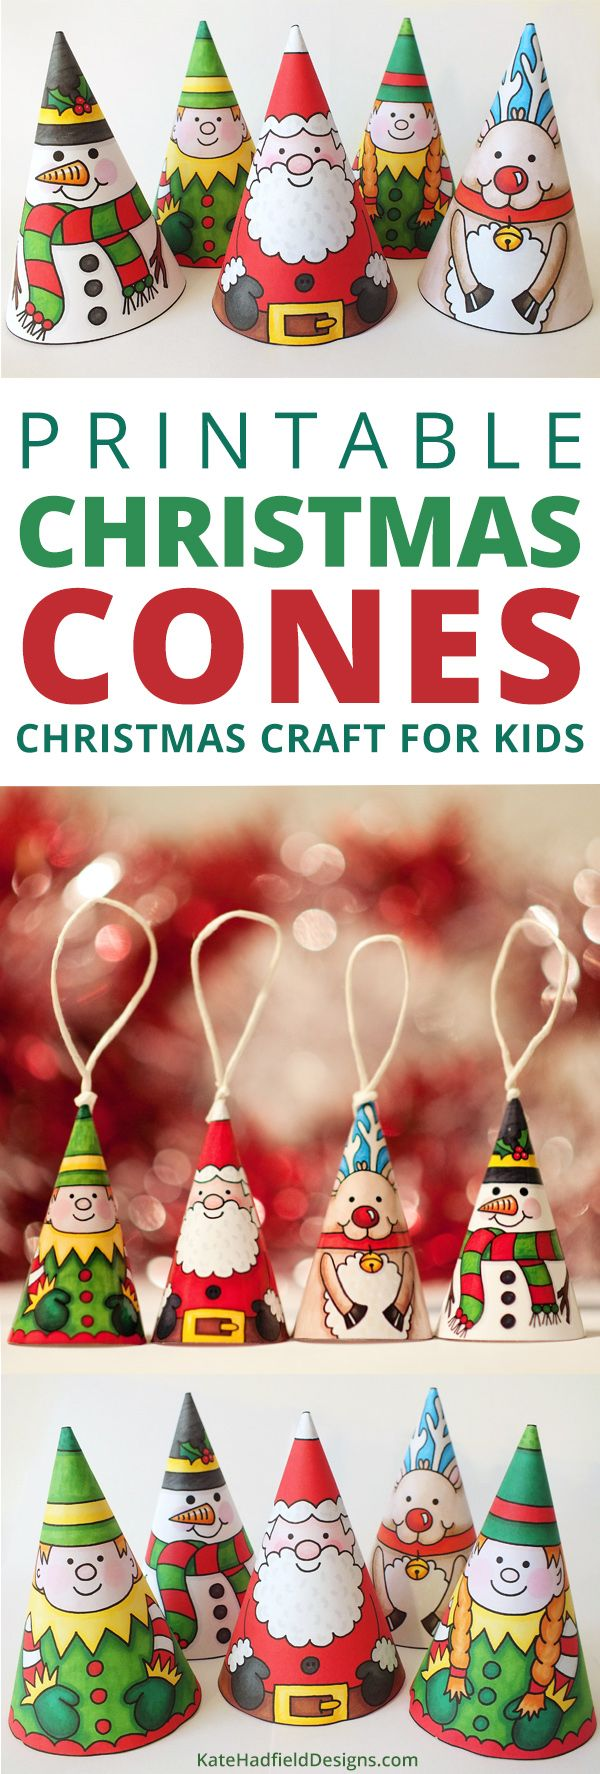 Colour In Christmas Cones - an easy Christmas craft for kids! Just print, cut our and decorate to create these cute cone characters! A fun activity the kids will enjoy each year, you can even add string or ribbon to turn them into tree ornaments!